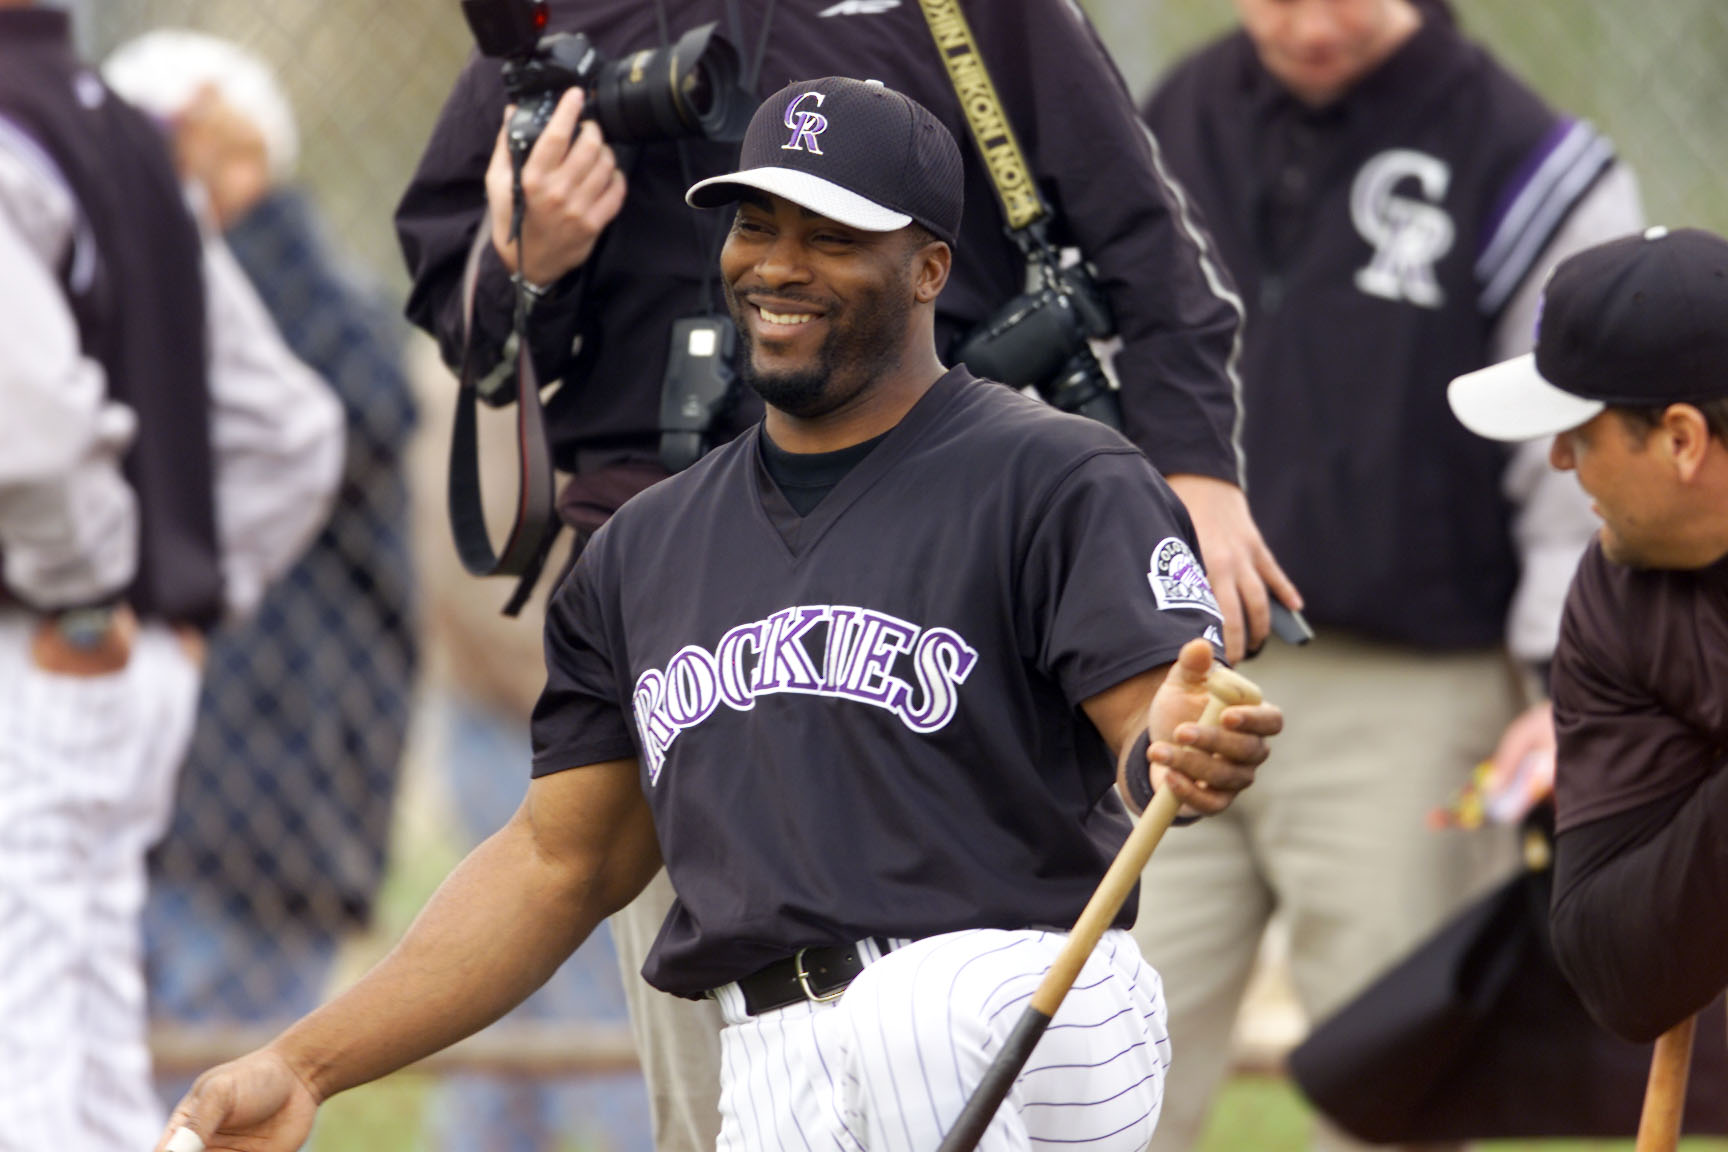 Feb. 23, 2001: Ron Gant #3 of the Colorado Rockies has a laugh during spring training at Tucson Electric Park in Tucson, Arizona. (credit: Brian Bahr/ALLSPORT/Getty Images)